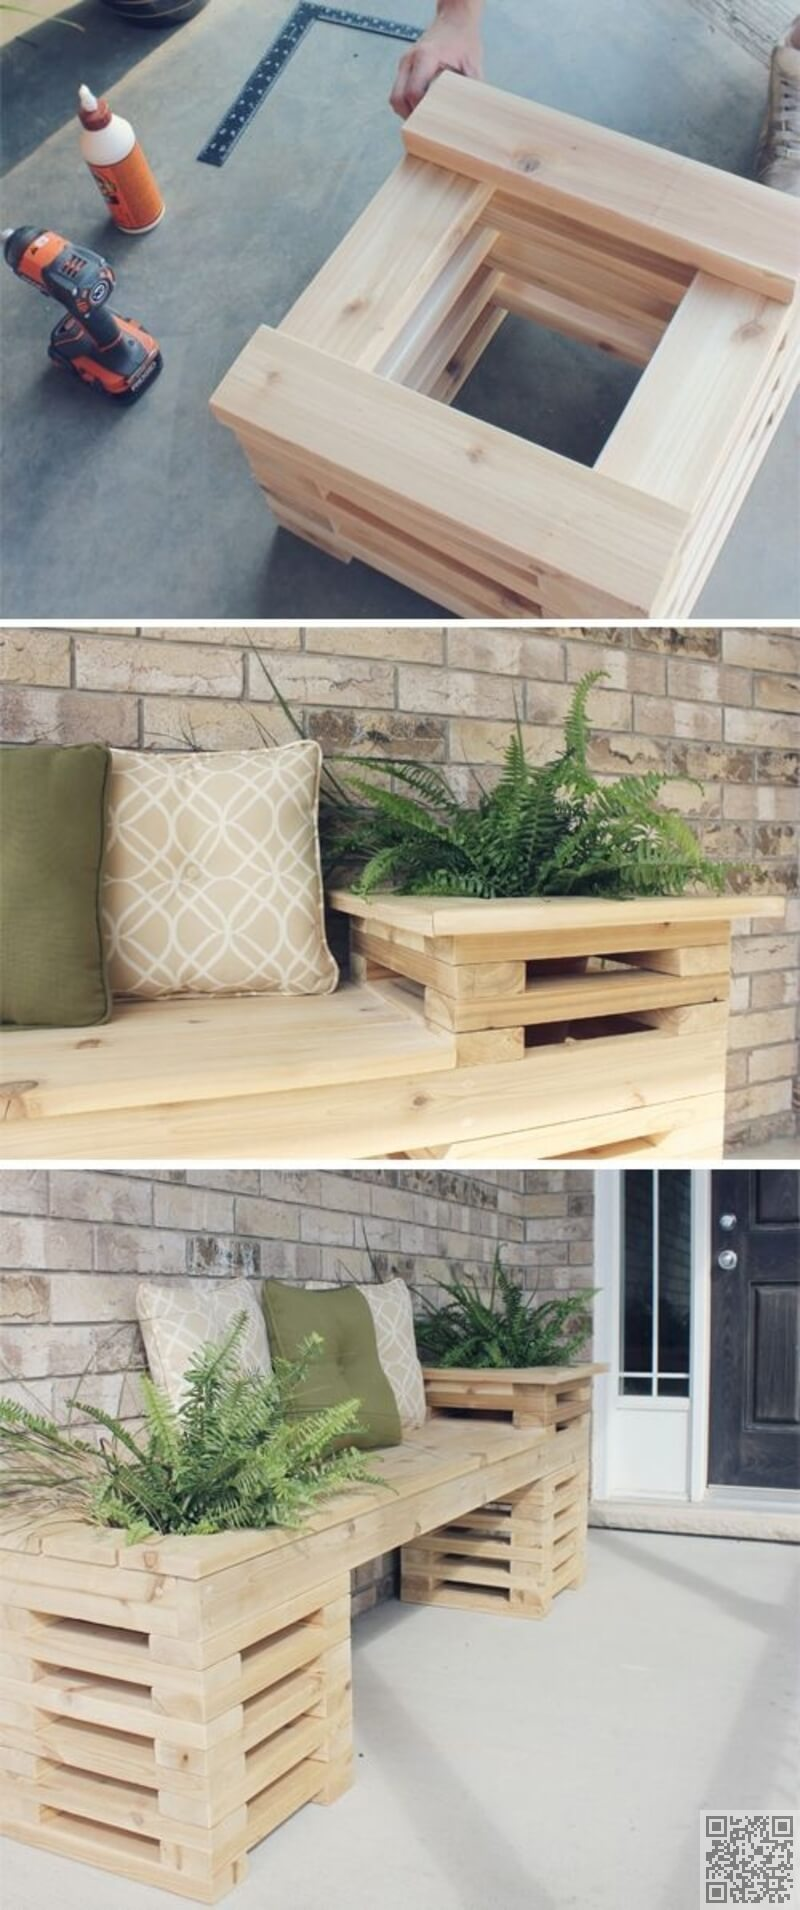 Wooden Plant Boxes with Built-in Bench